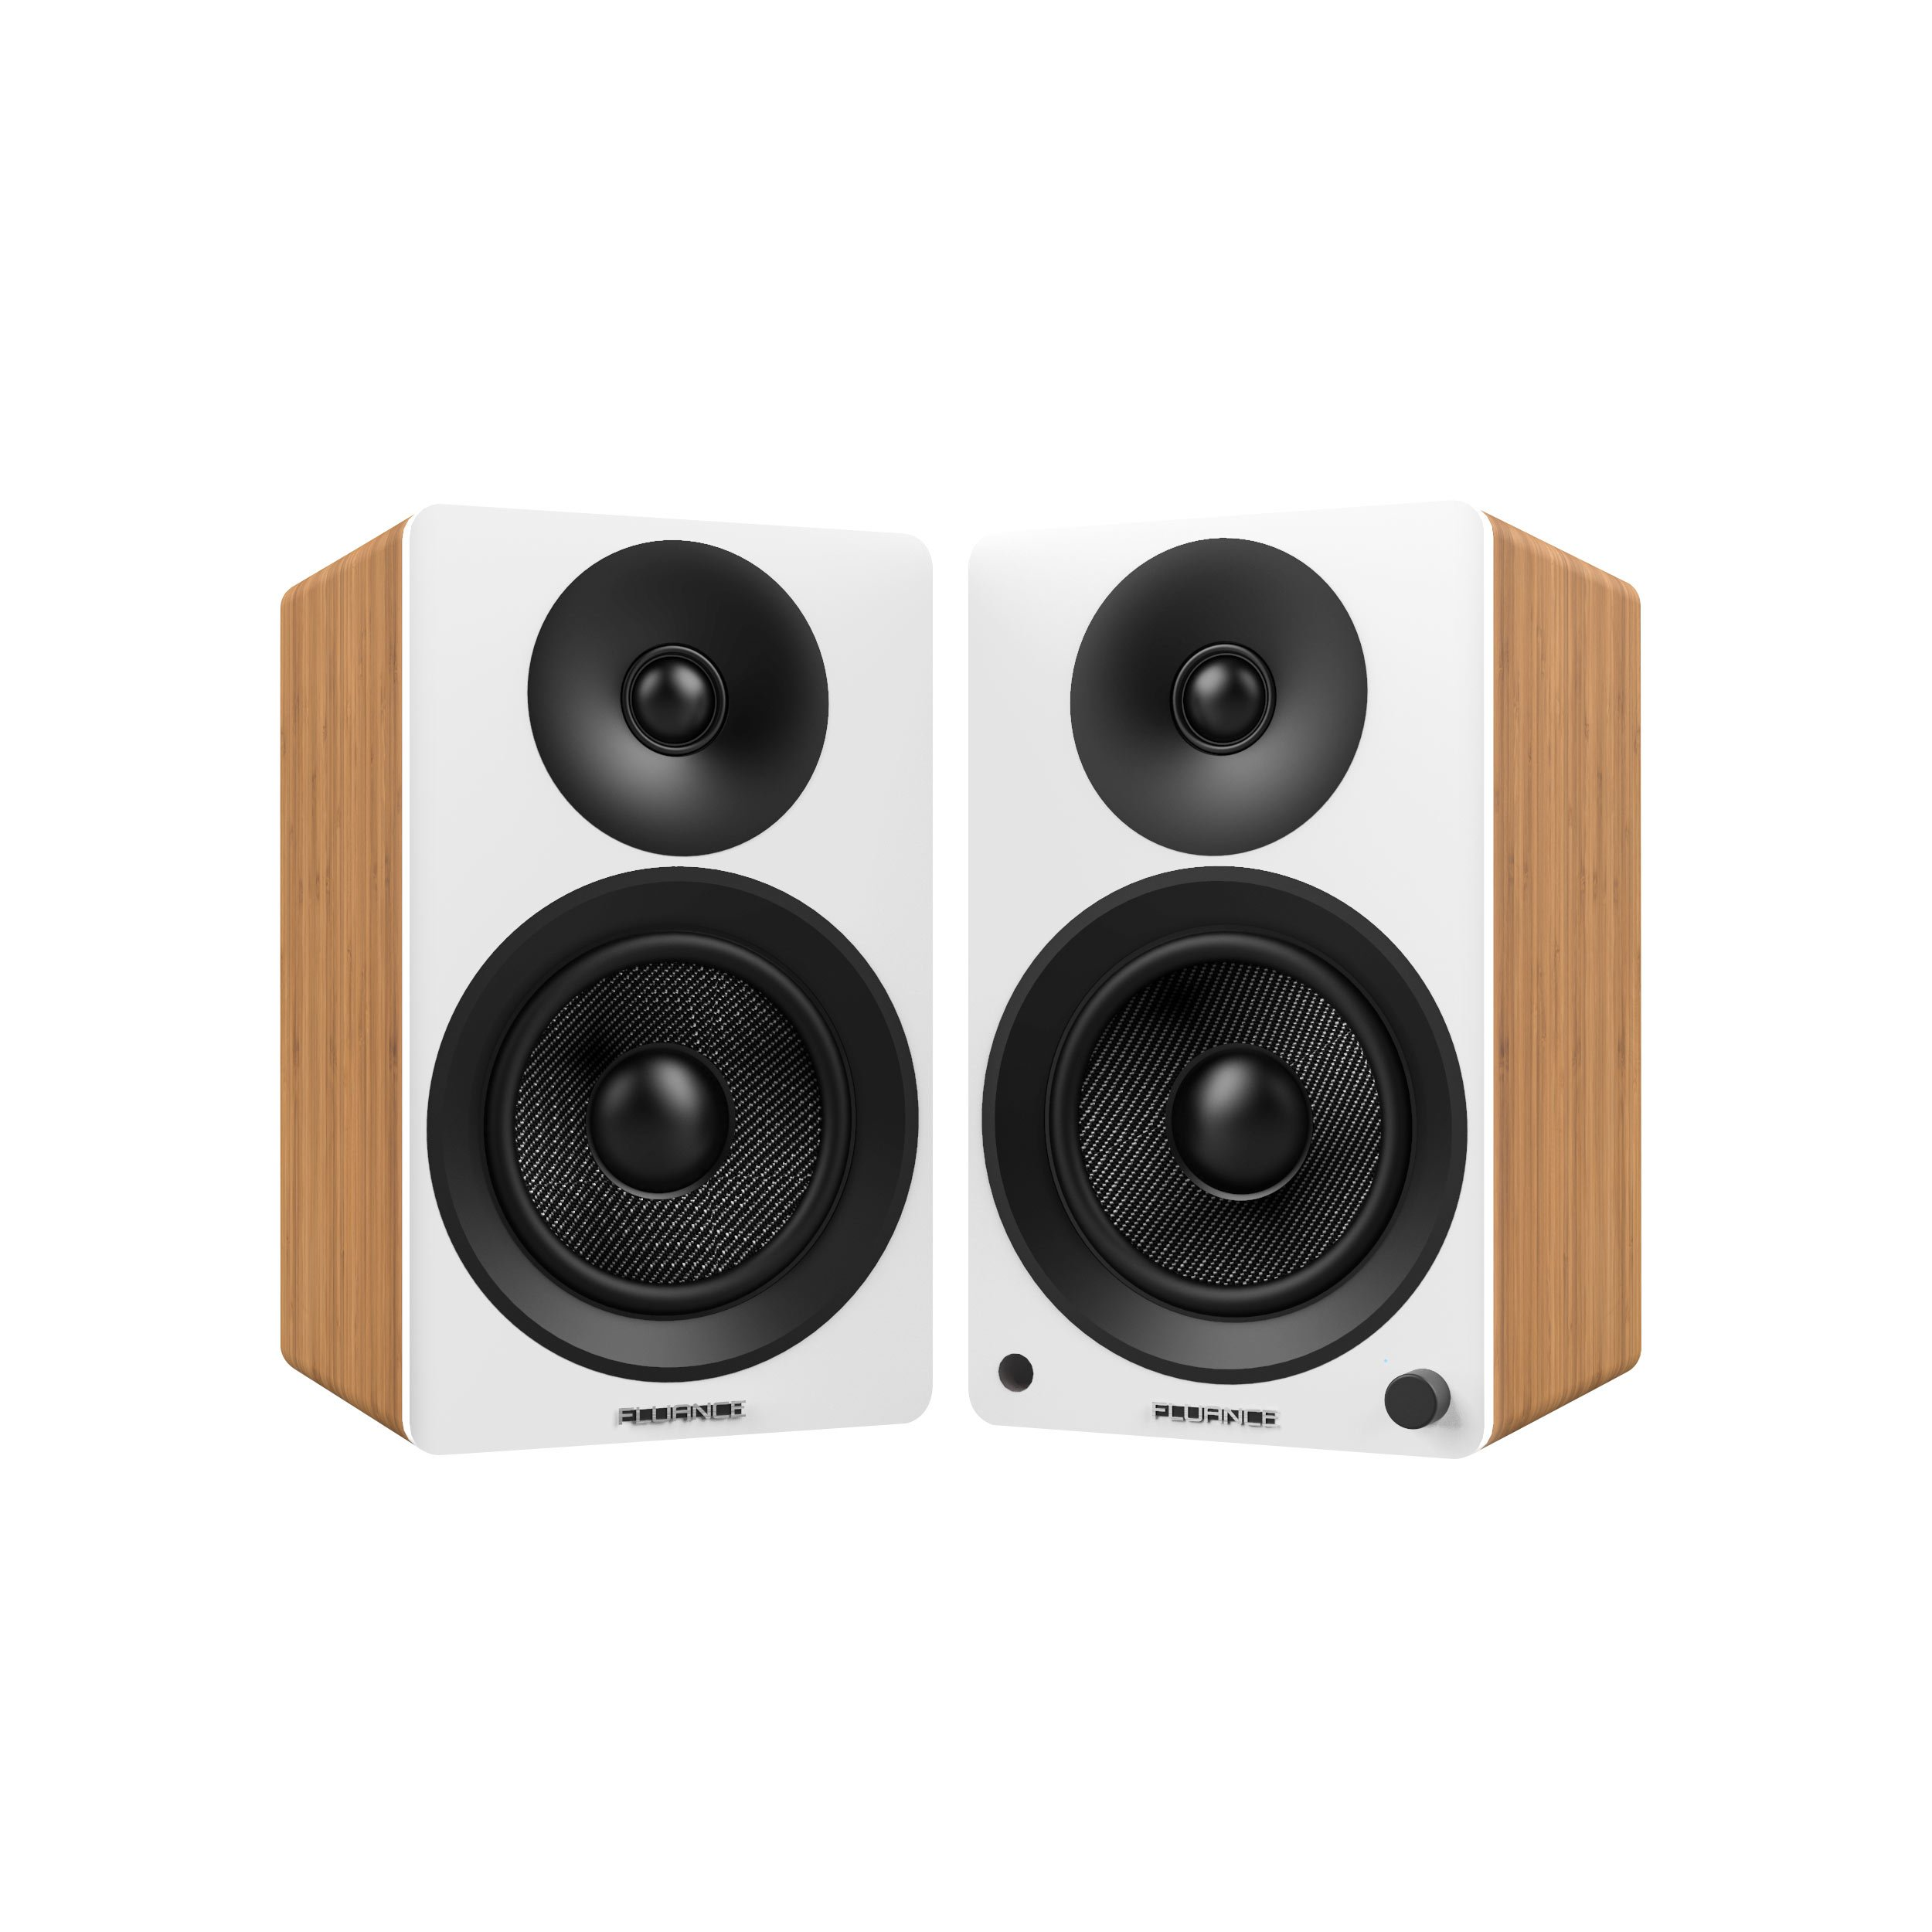 Fluance Ai40W Powered Two-Way 5'' 2.0 Bookshelf Speakers with 70W Class D Amplifier for Turntable, PC, HDTV & Bluetooth aptX Wireless Music Streaming (Lucky Bamboo) by Fluance